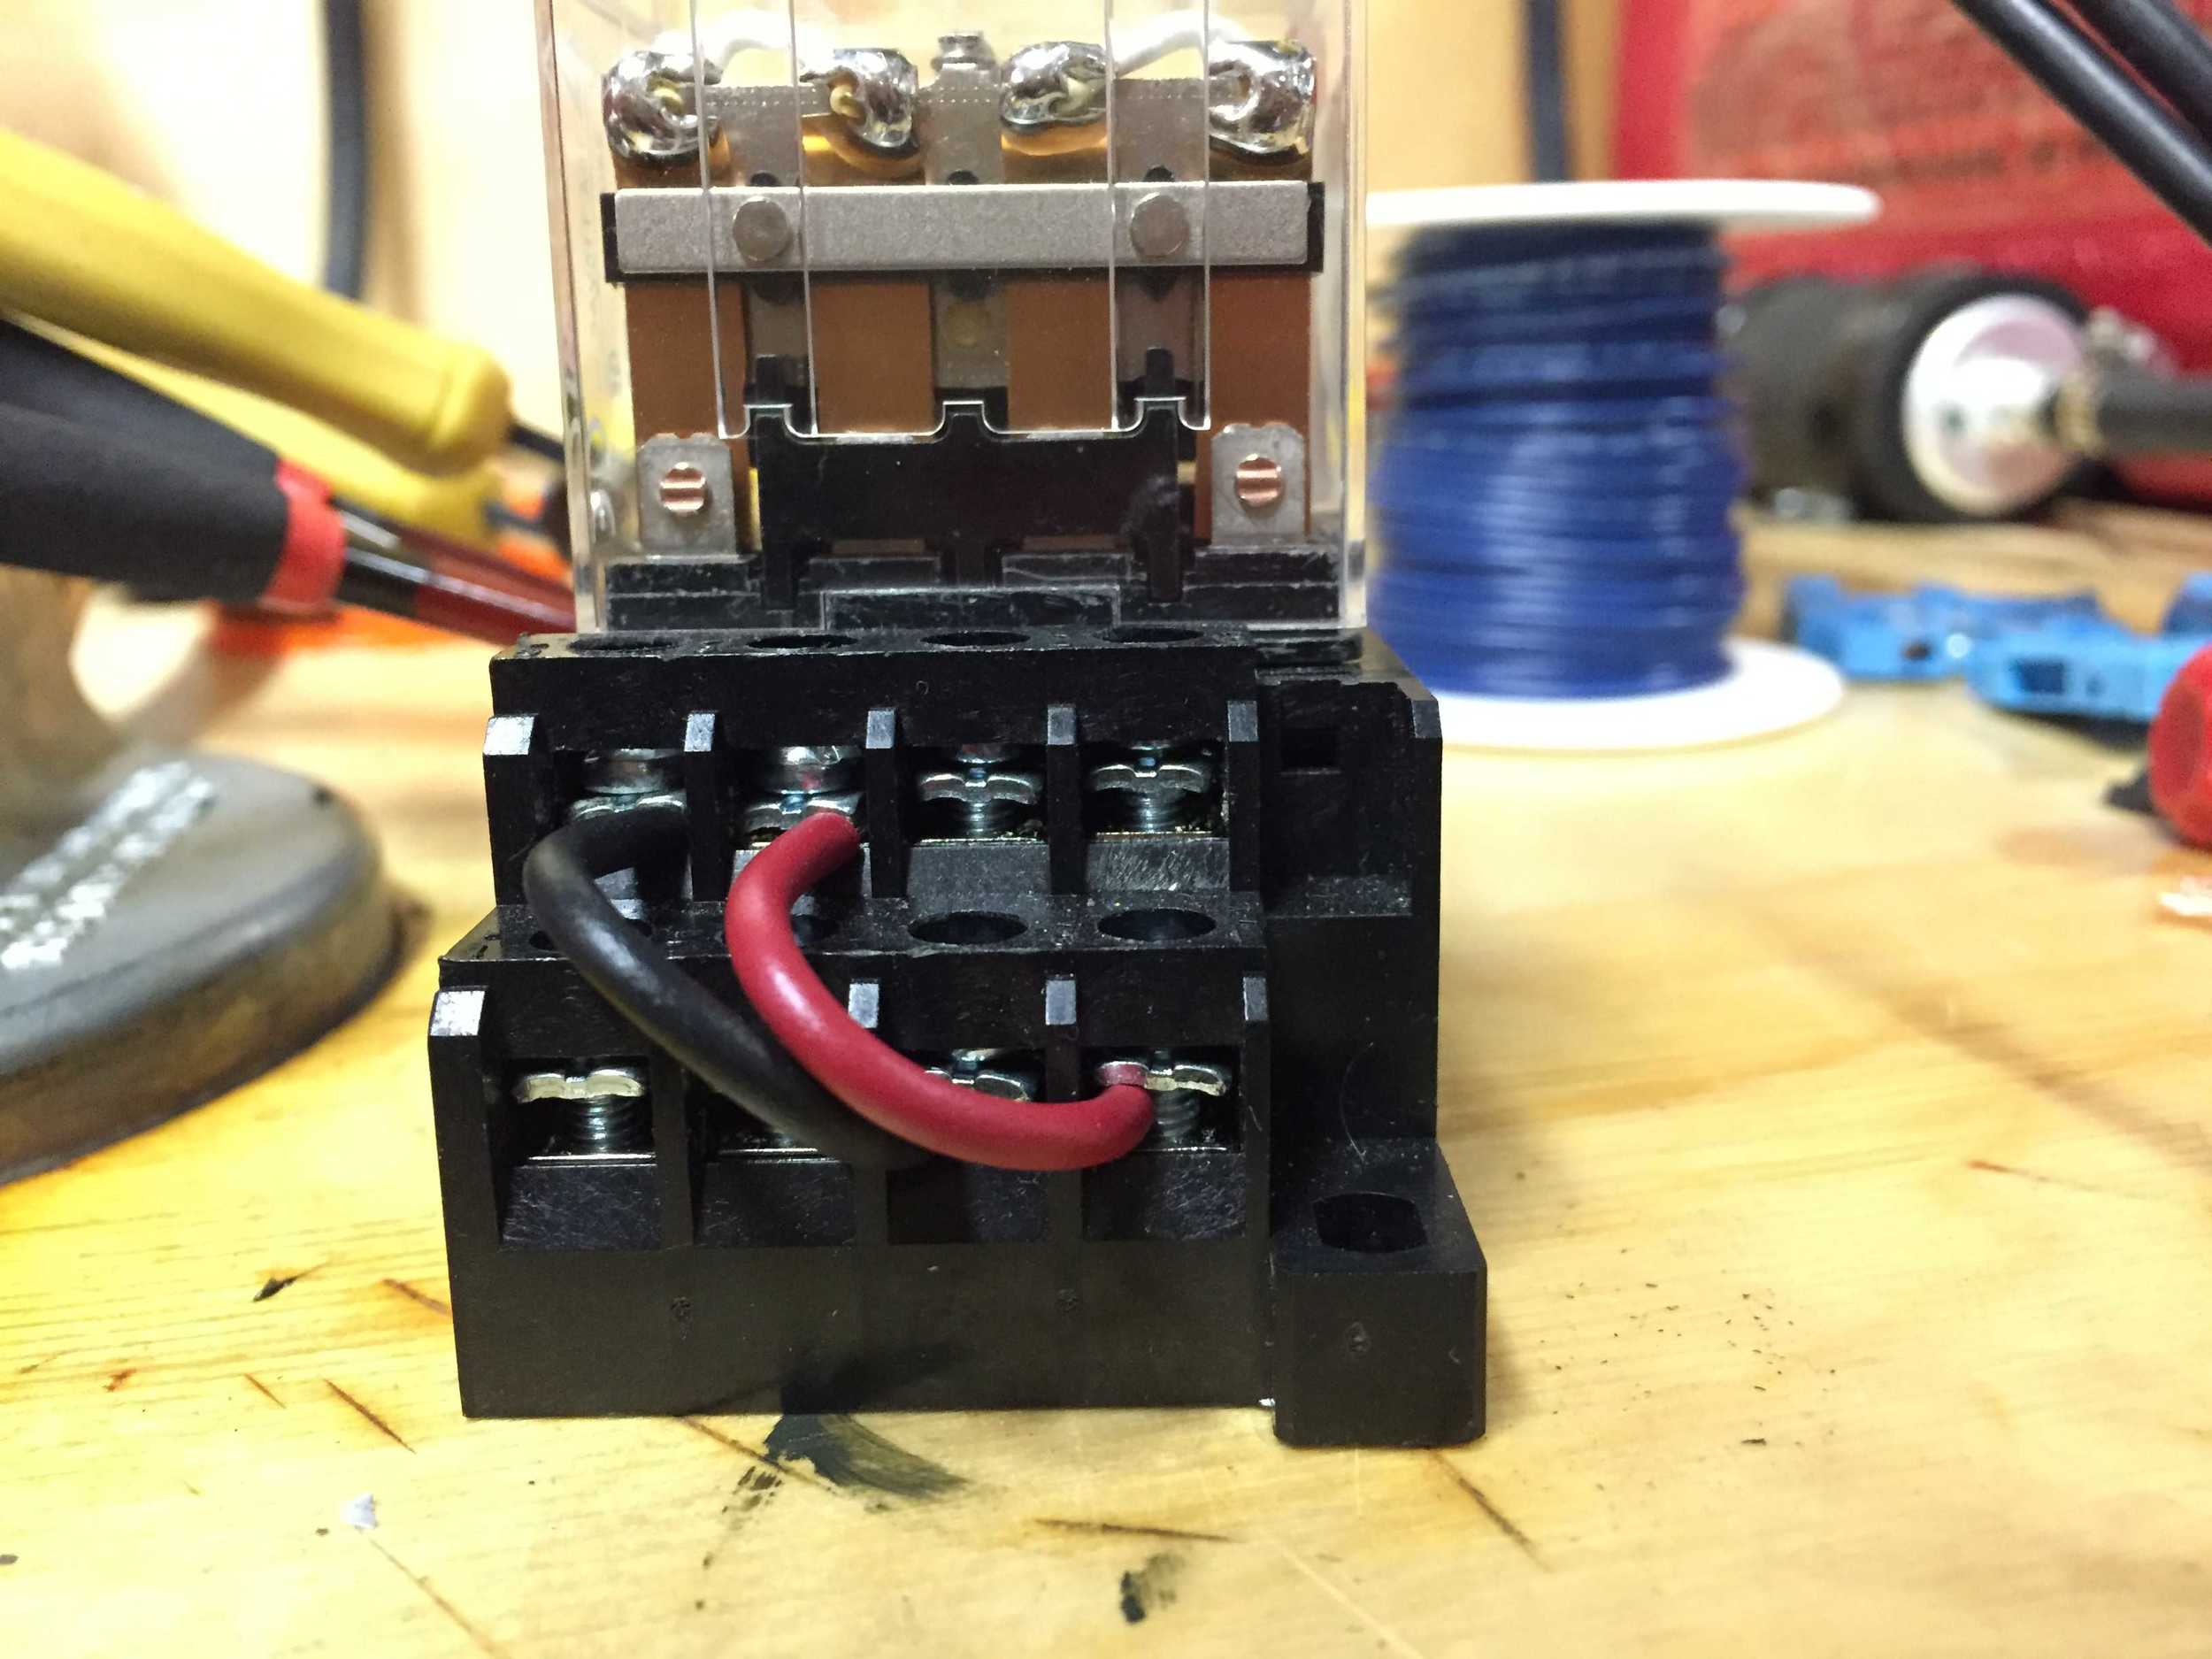 What the relays will look like. So when the stock ECU loses control of the injectors, it will begin controlling the top row which will be connected to the dummy injectors.